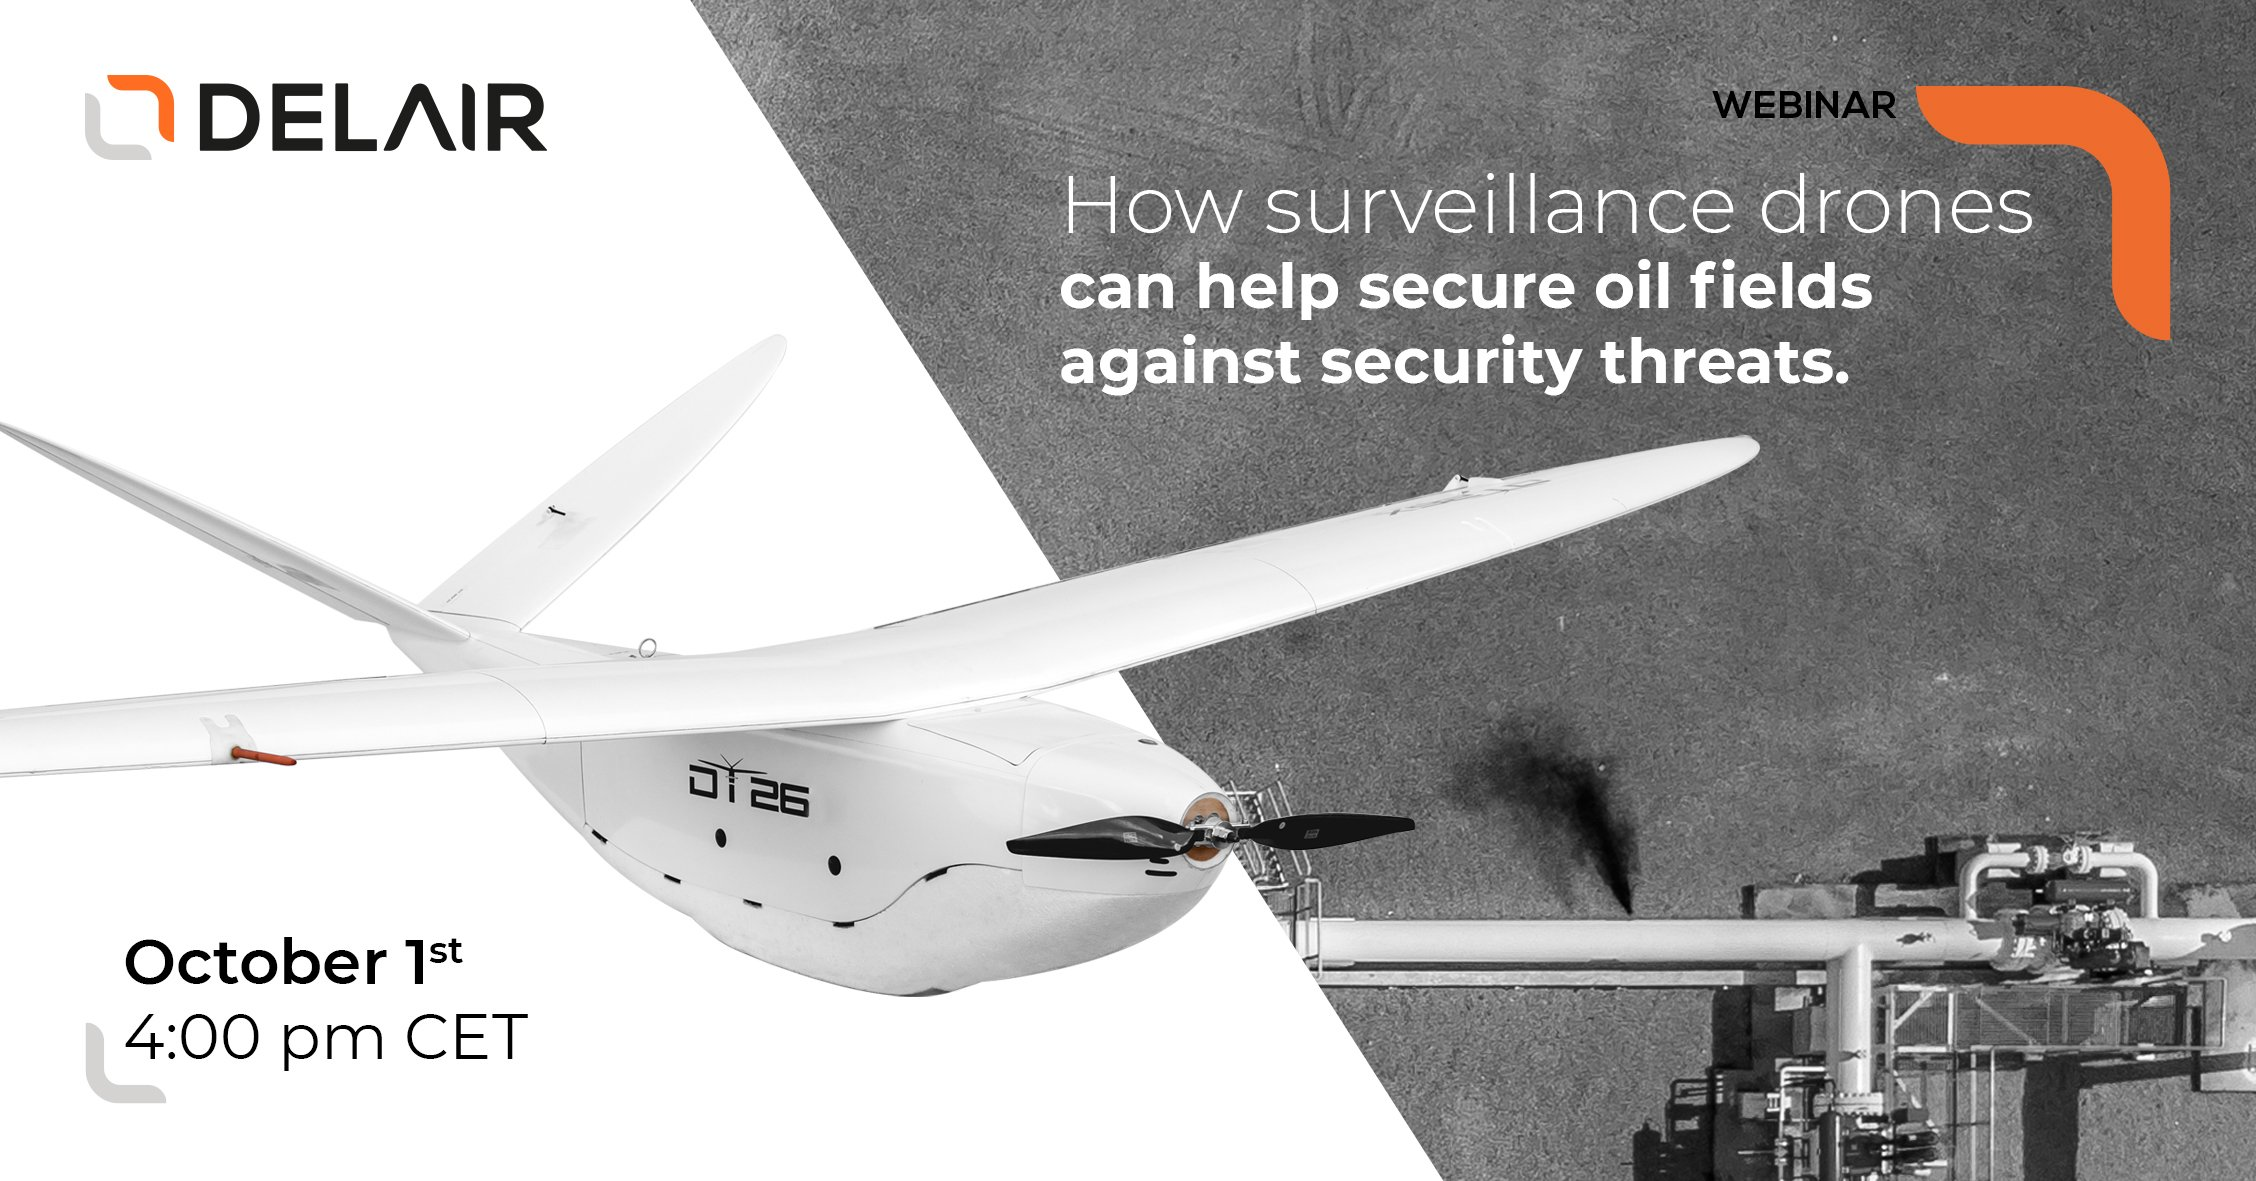 How can surveillance drones help secure oil fields against security threats?